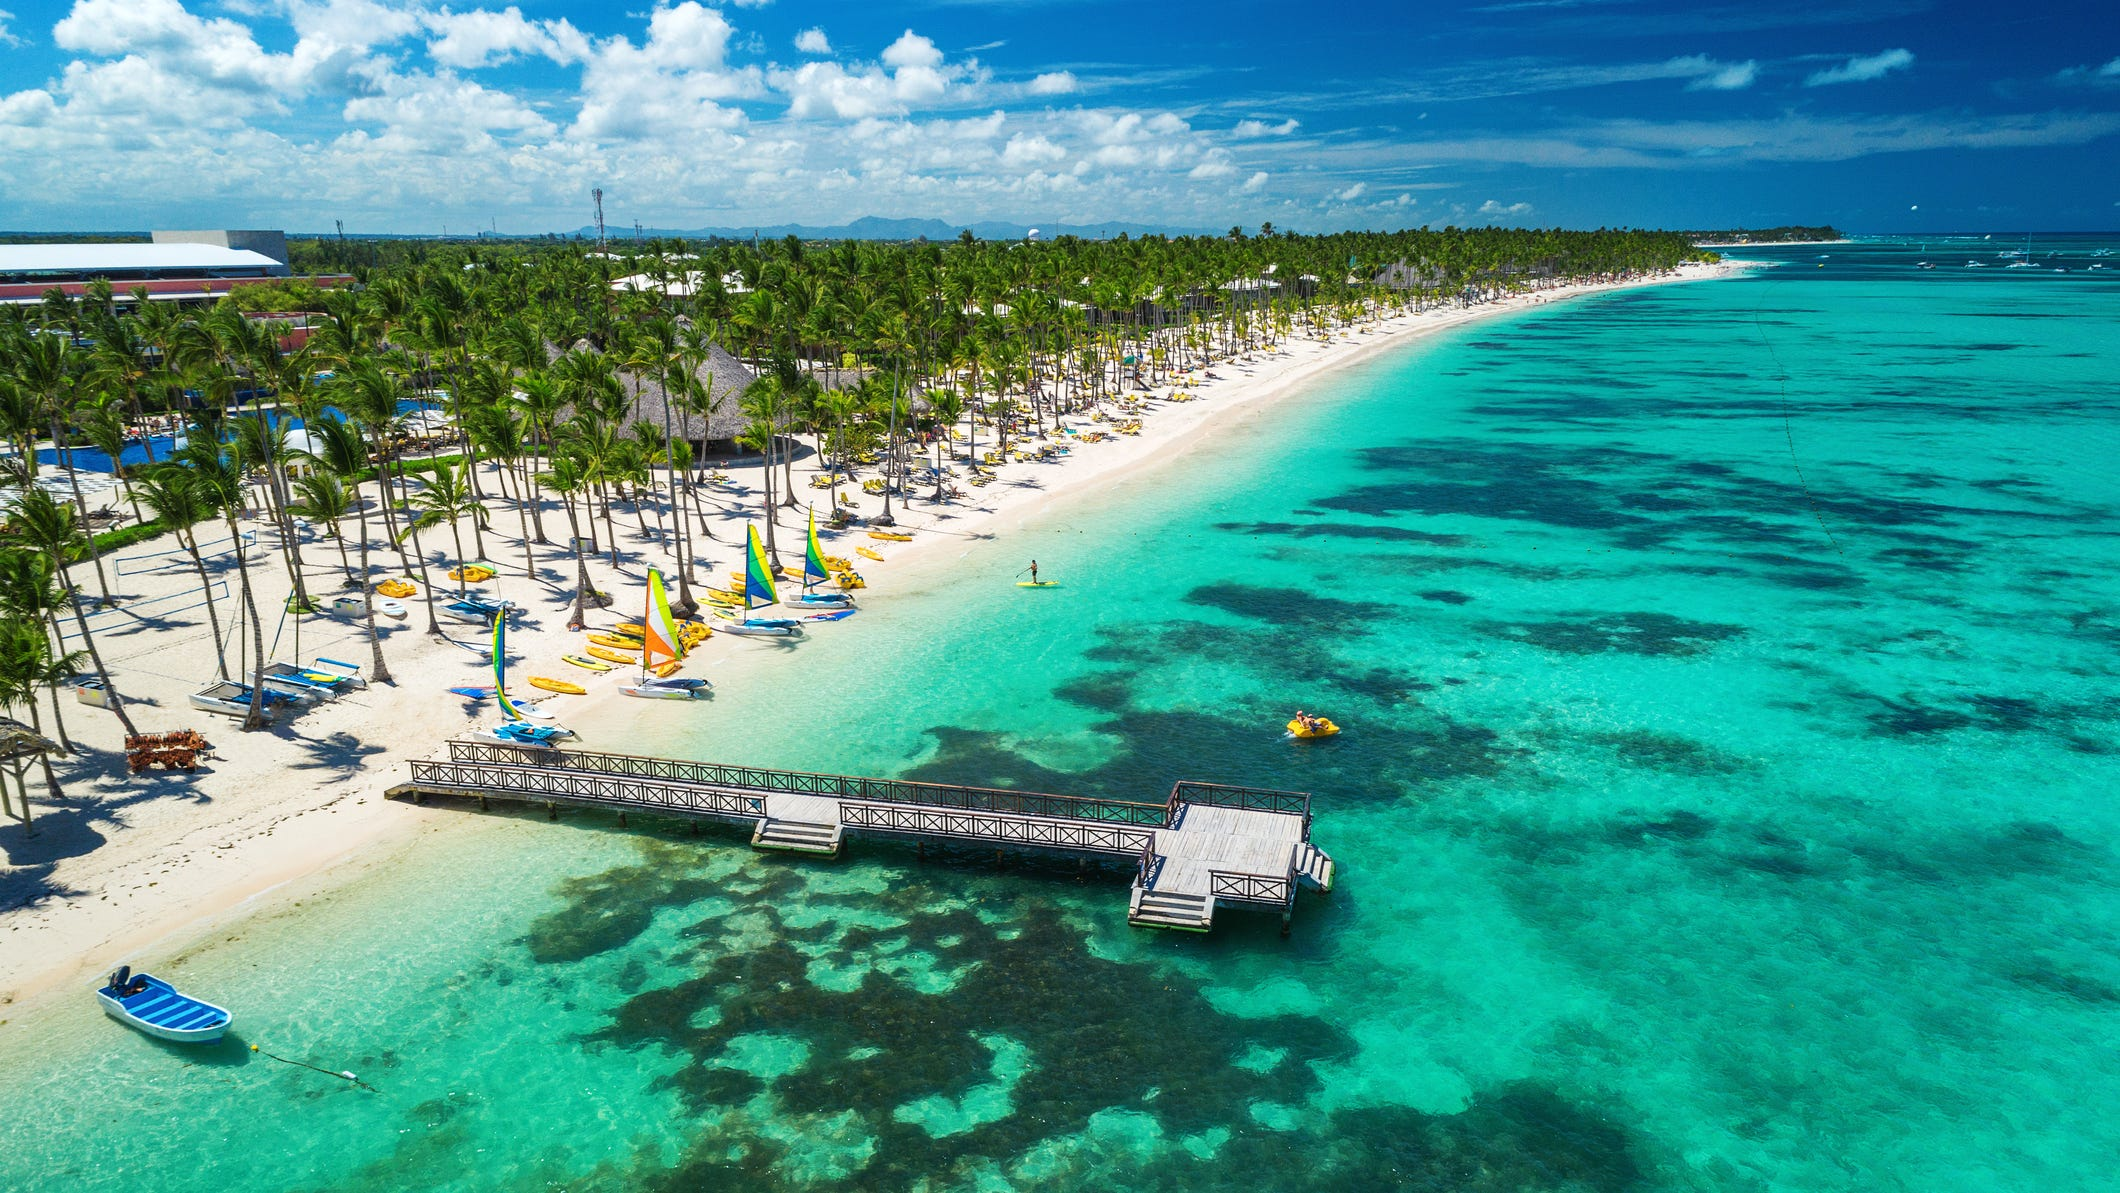 Dominican Republic: The Dominican Republic is probably the cheapest Caribbean island to visit if you're looking for affordable all-inclusive deals. On a recent visit to CheapCaribbean.com, there were dozens of packages in Punta Cana, the most popular resort area, starting at just $599 per person for air and four nights' accommodations. Activities in the area include snorkeling, zip lining and off-road ATV tours through the jungle. You can also go hiking and swim in clear lagoons at the Indigenous Eyes Ecological Park & Reserve.